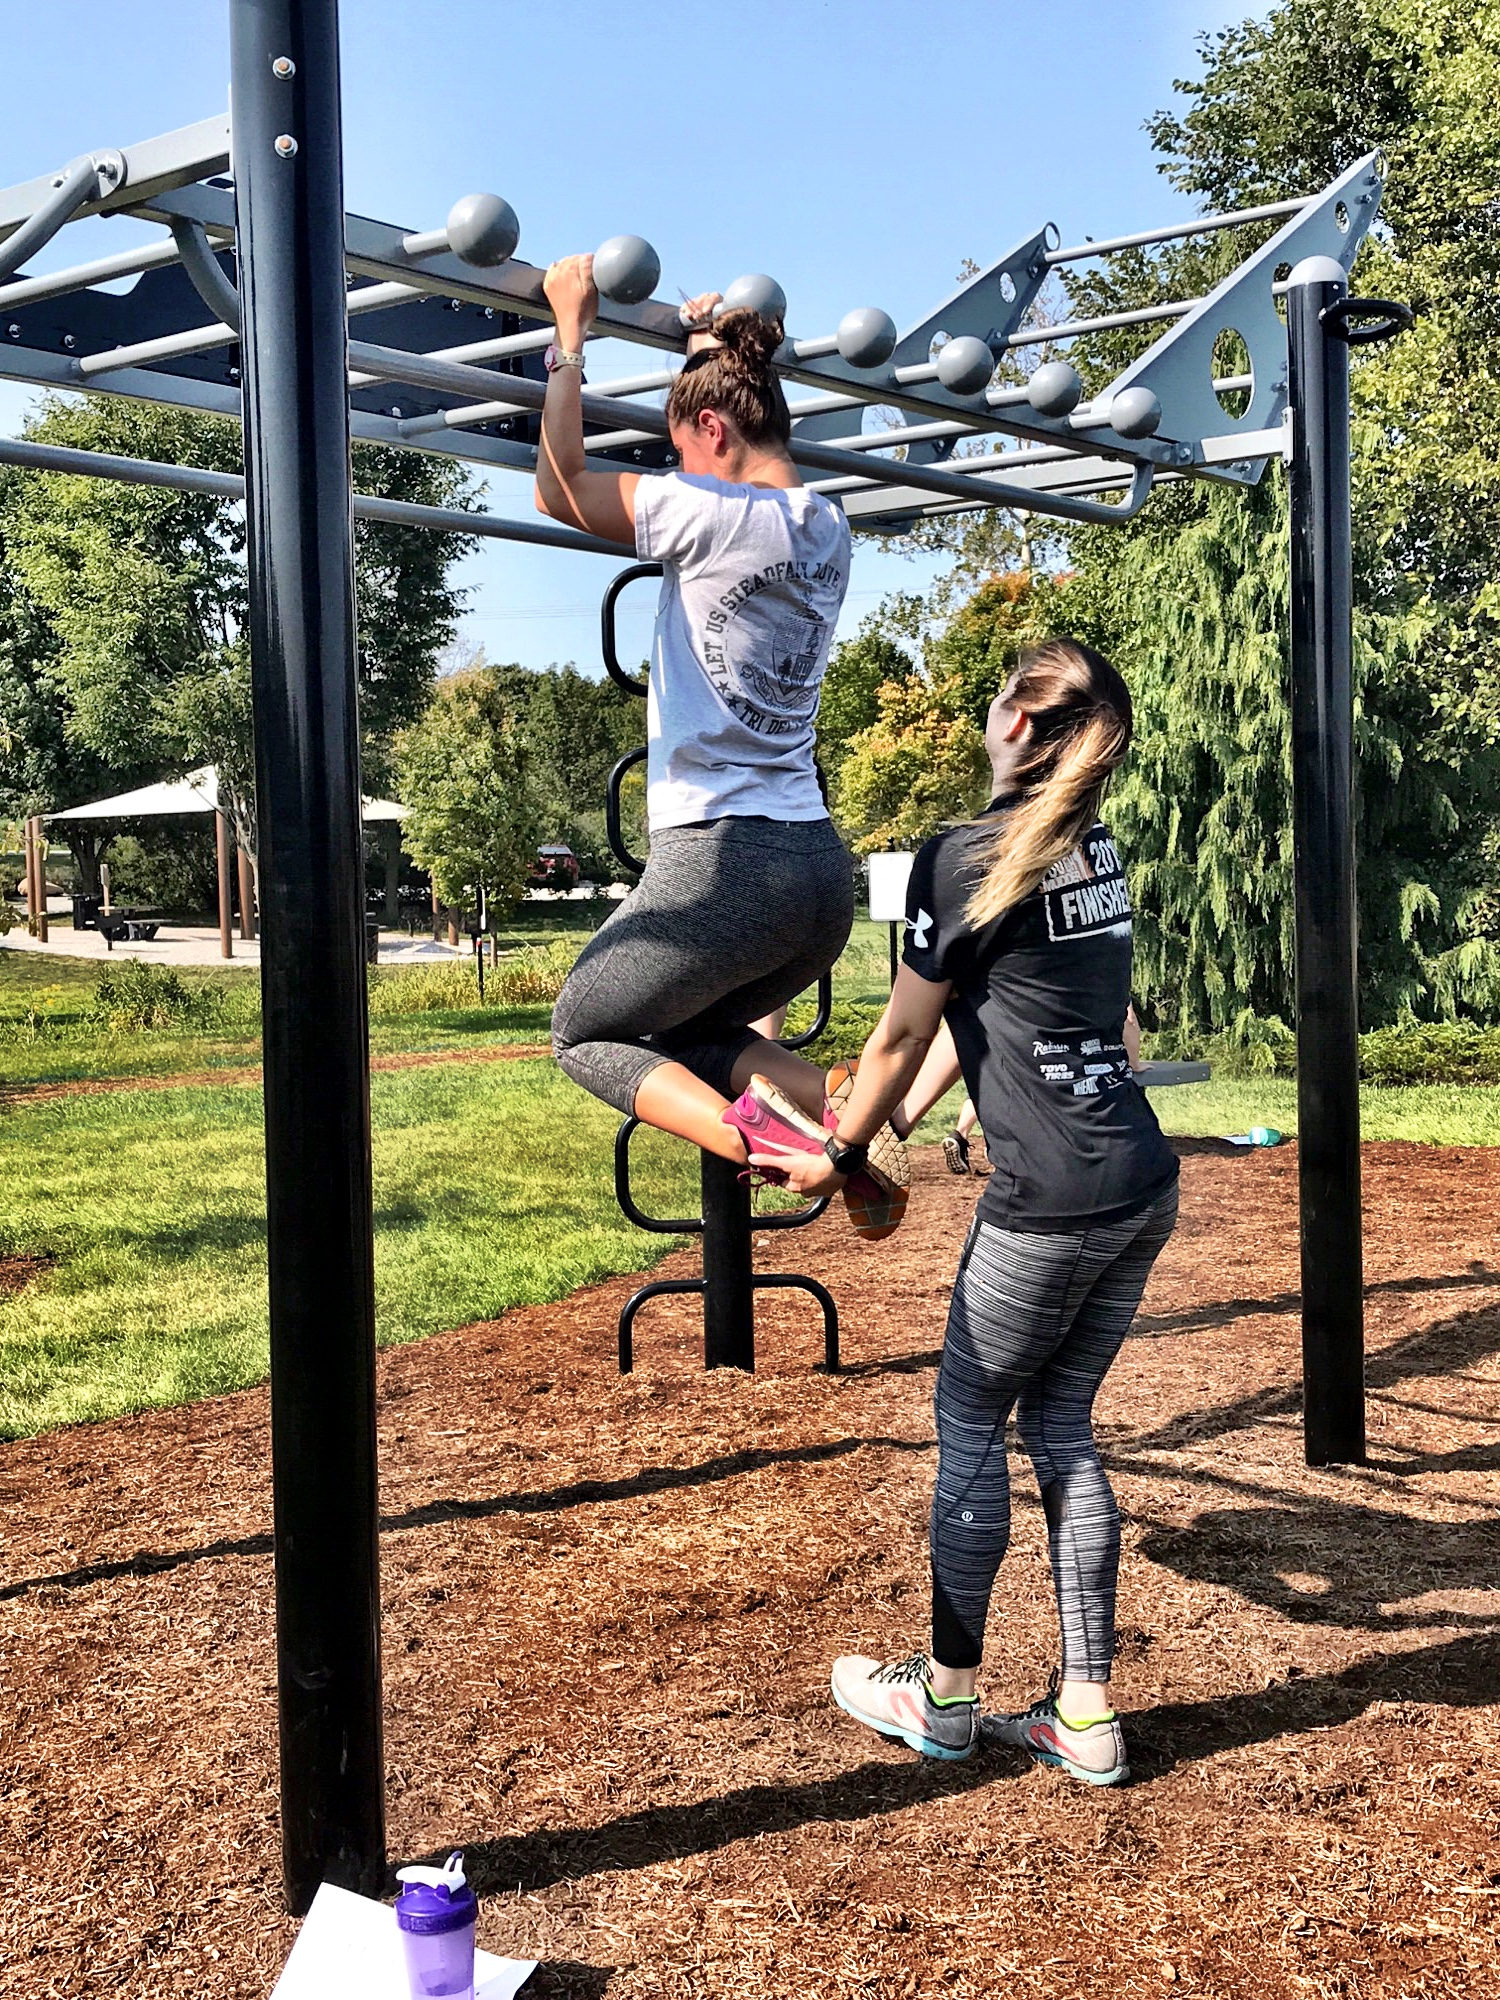 Outdoor Monkey Bars with Side Rail Pull-up bars and Globe Grip rail